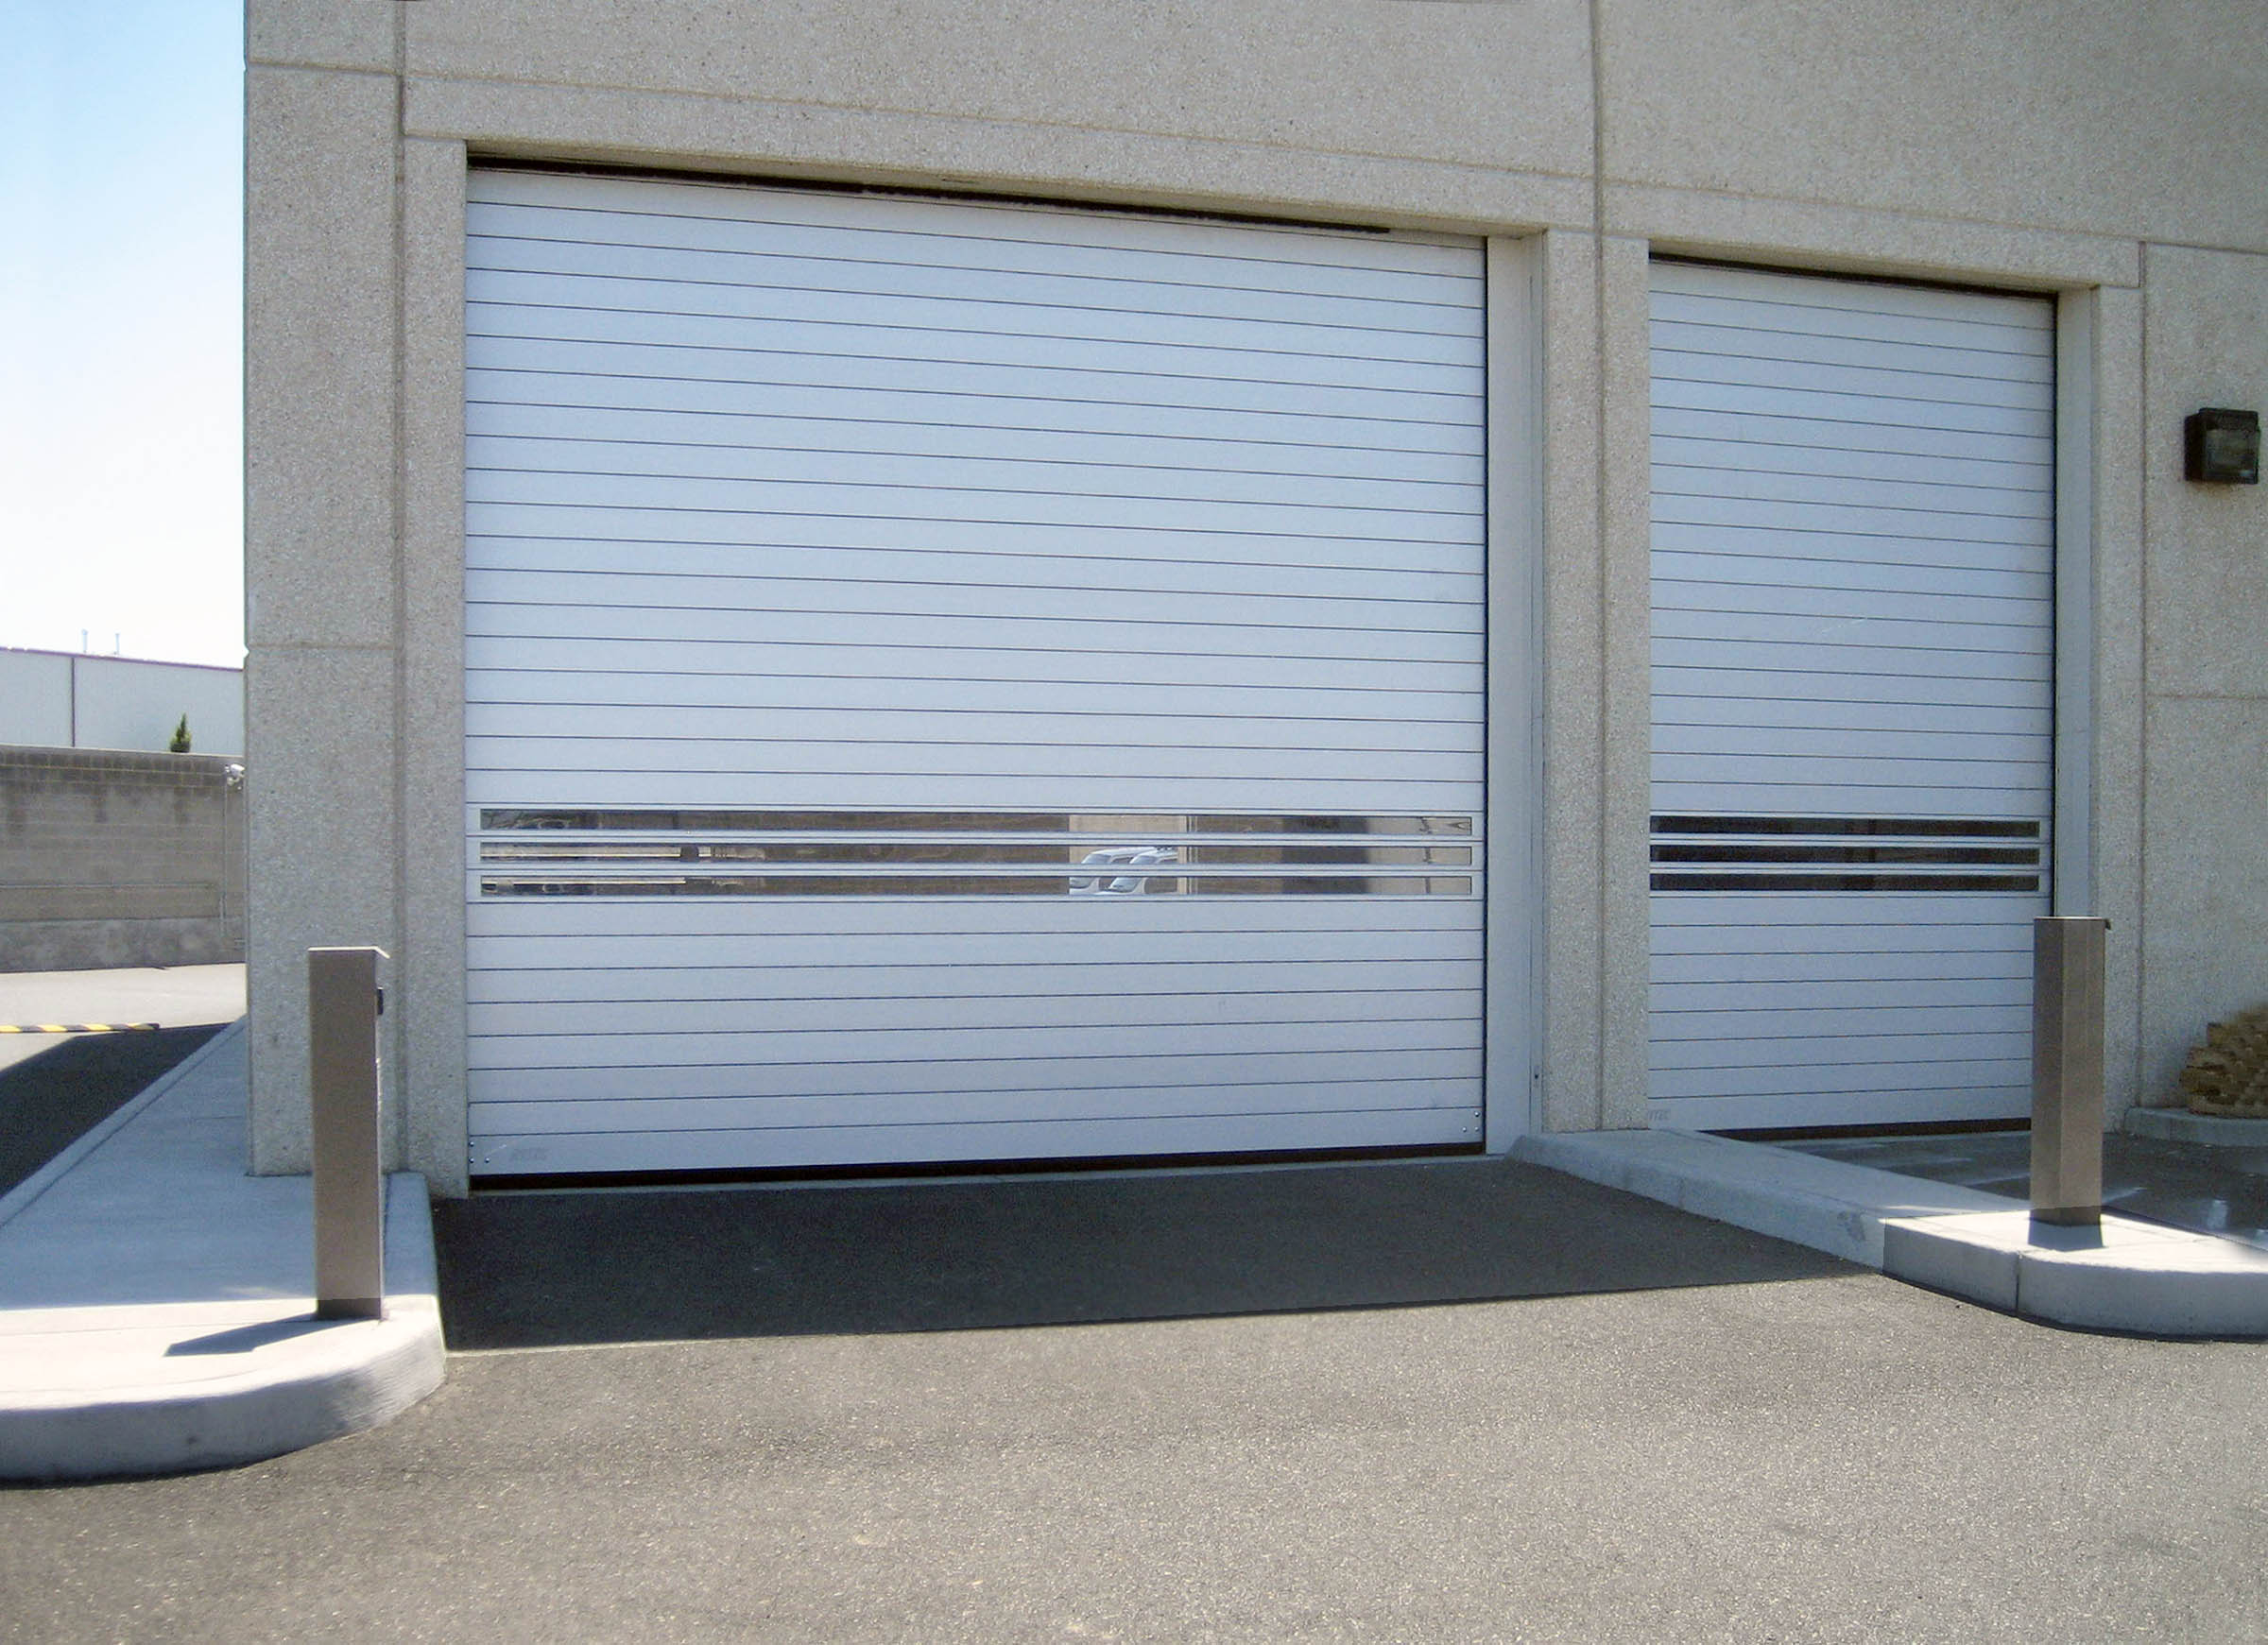 Doors Ready for Cold Weather